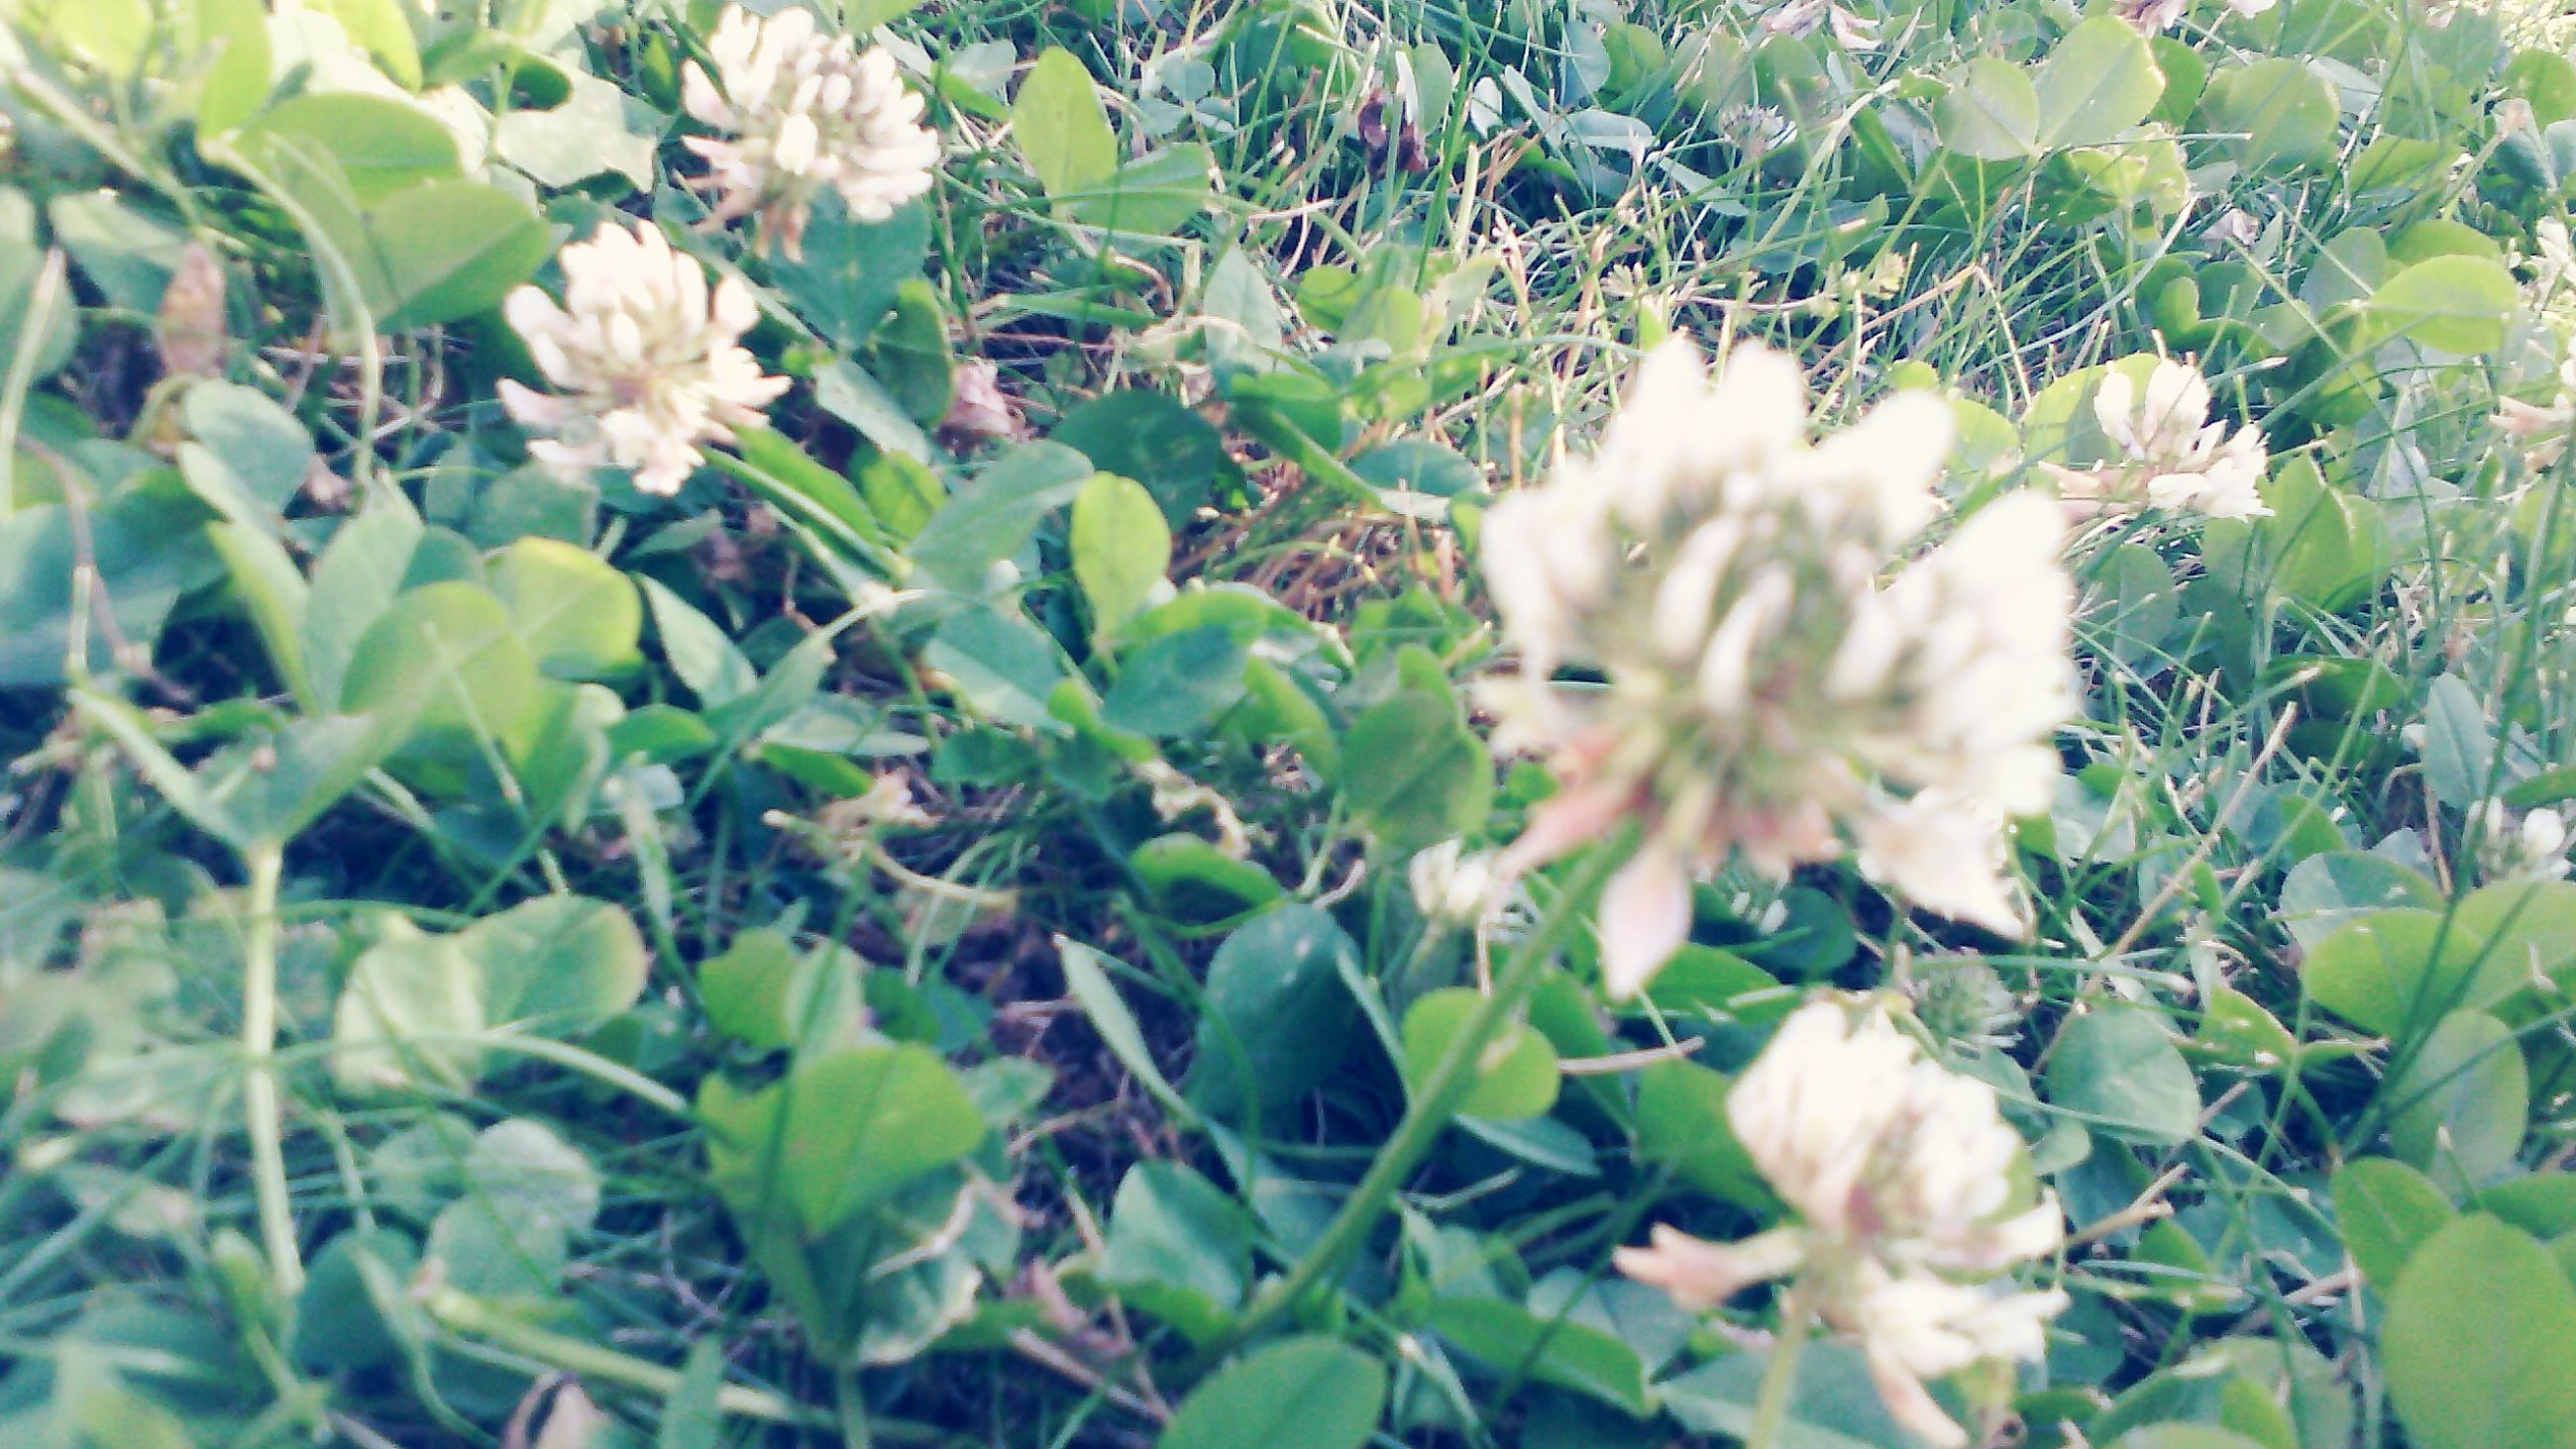 flower, growth, freshness, fragility, plant, leaf, petal, white color, beauty in nature, nature, blooming, flower head, green color, close-up, in bloom, focus on foreground, high angle view, day, growing, blossom